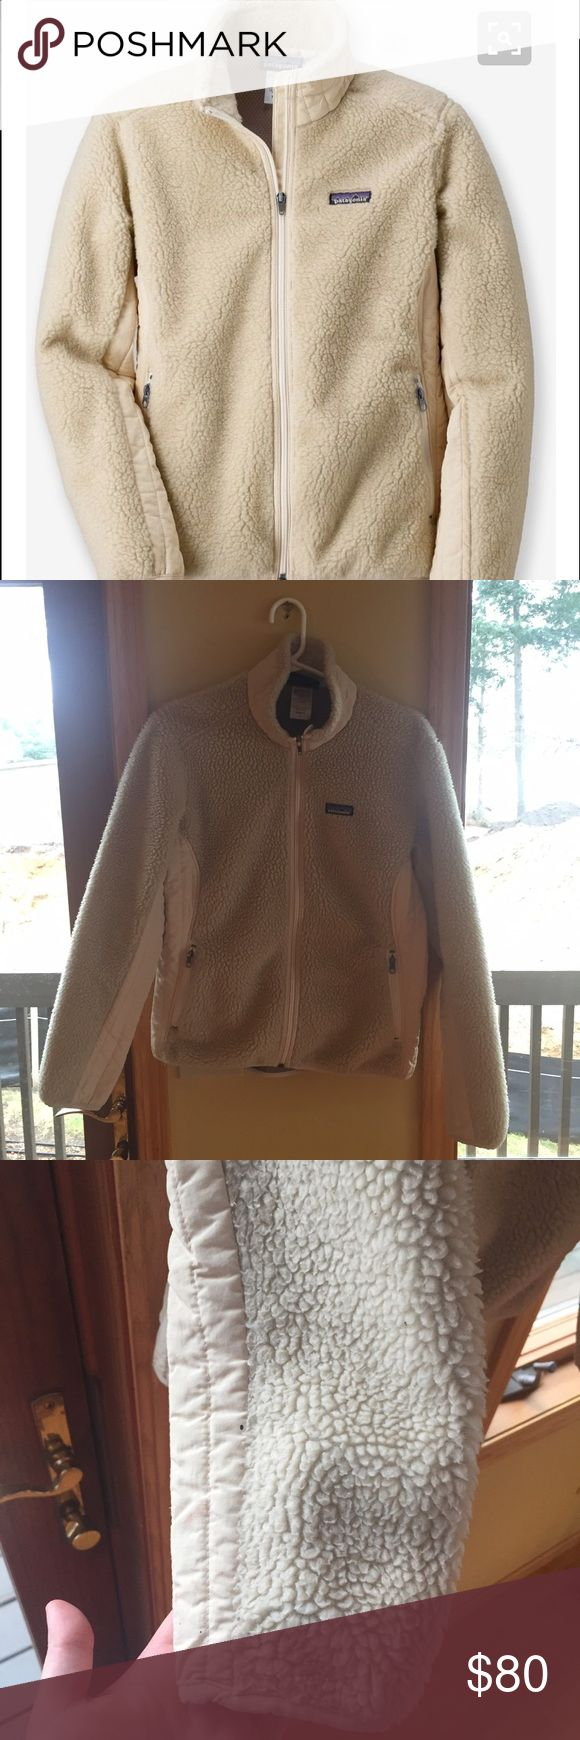 Large Patagonia jacket retro x cream Women's jacket. In good used condition Patagonia Jackets & Coats